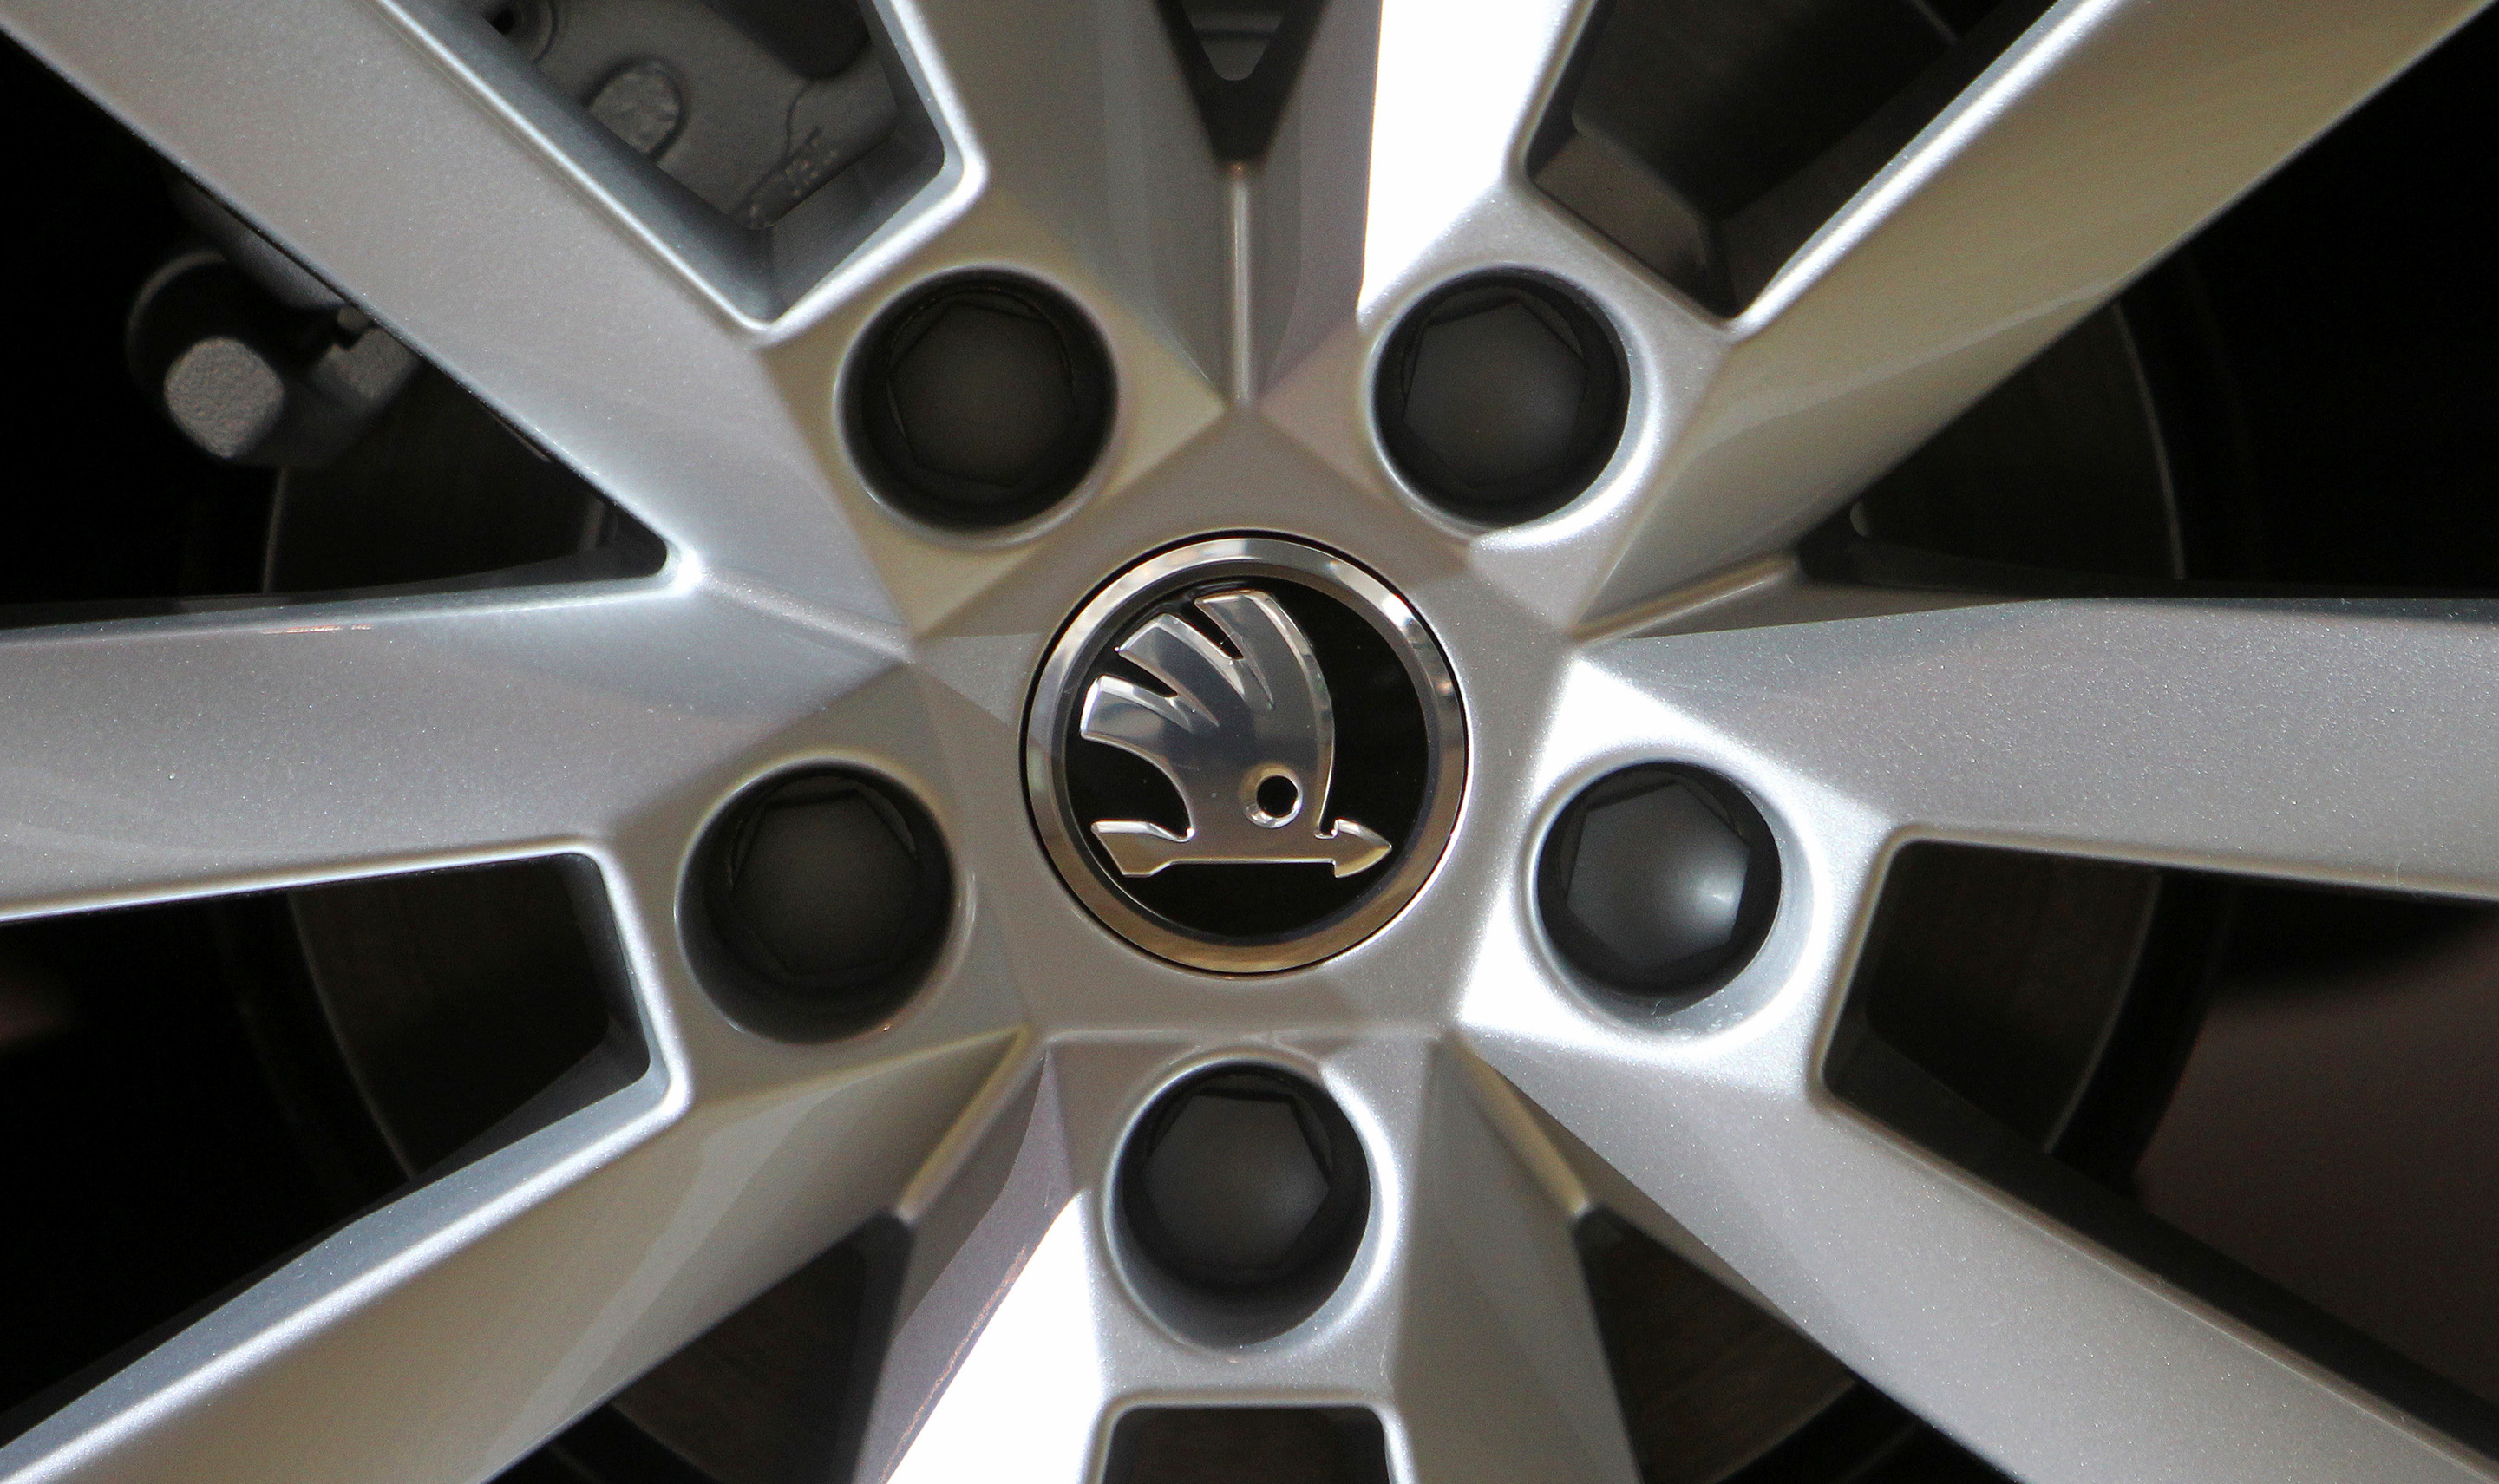 A logo is seen on a wheel of a Skoda Octavia car after a presentation of the company's annual results in Mlada Boleslav March 20, 2013. REUTERS/David W Cerny